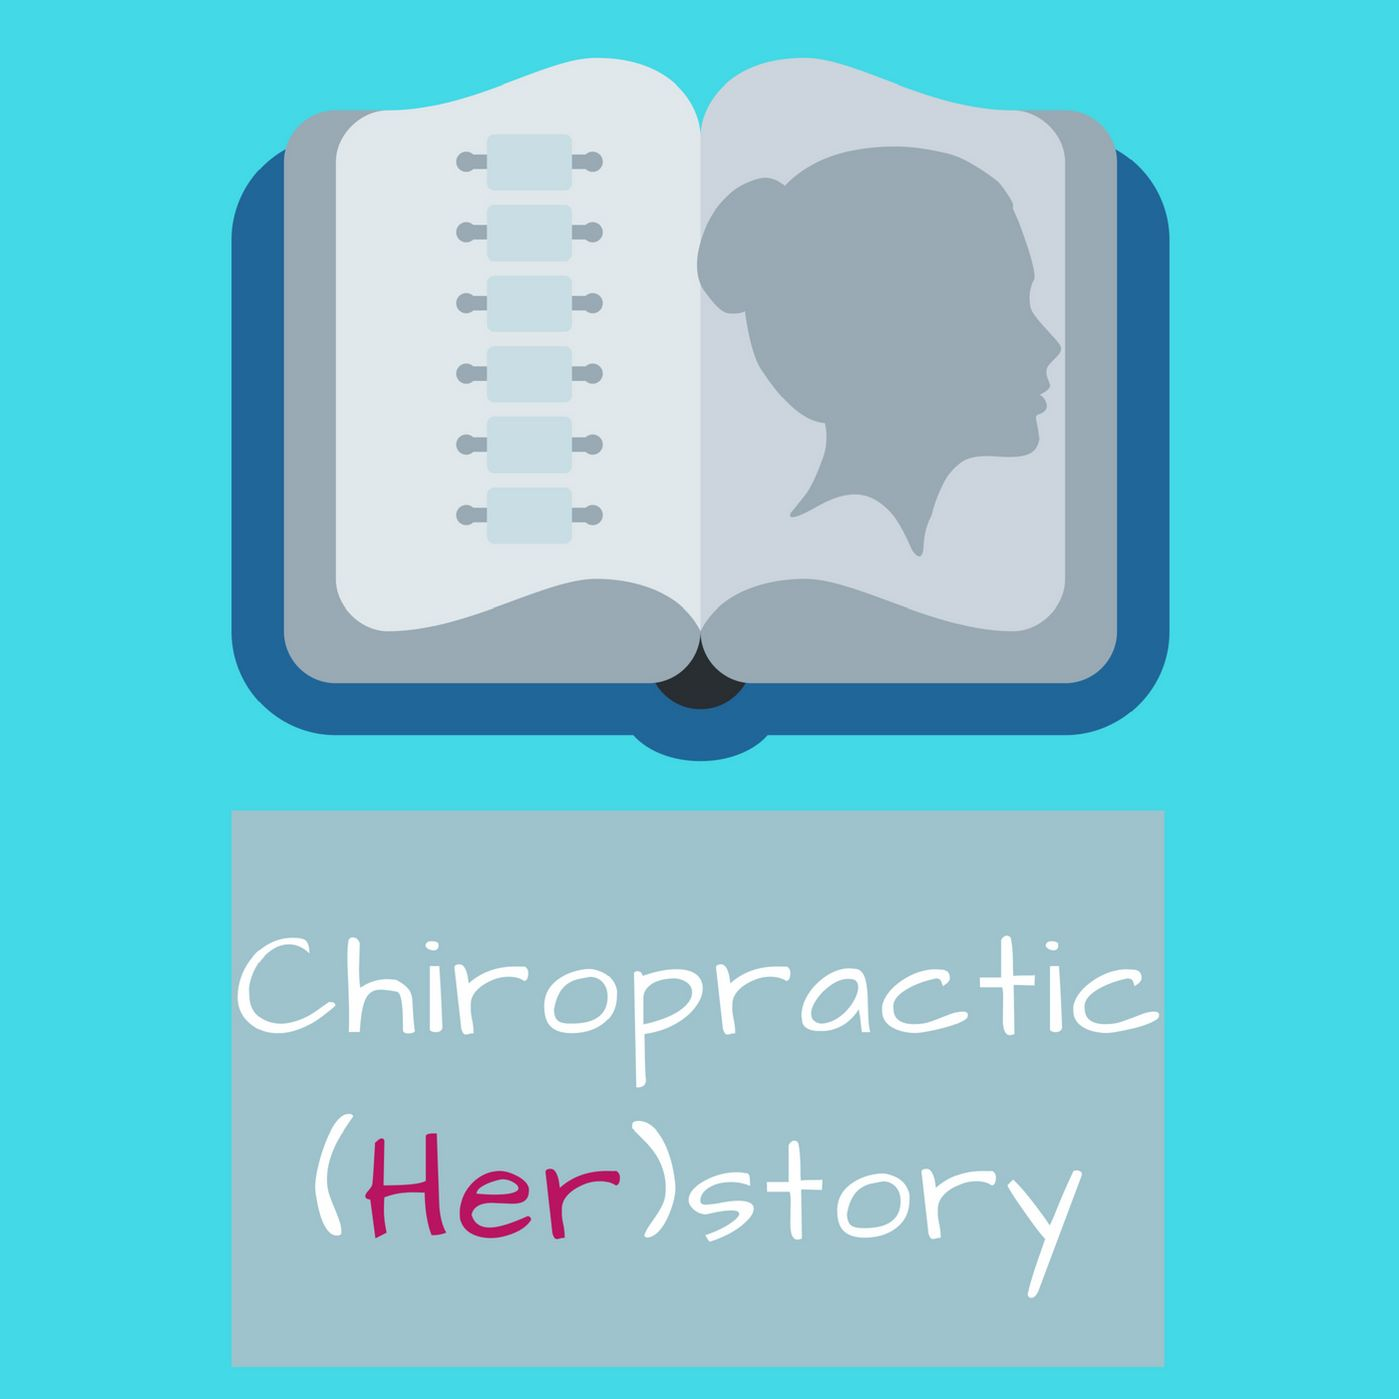 Dr. Amy Haas- Chiropractic (Her)story Episode 48